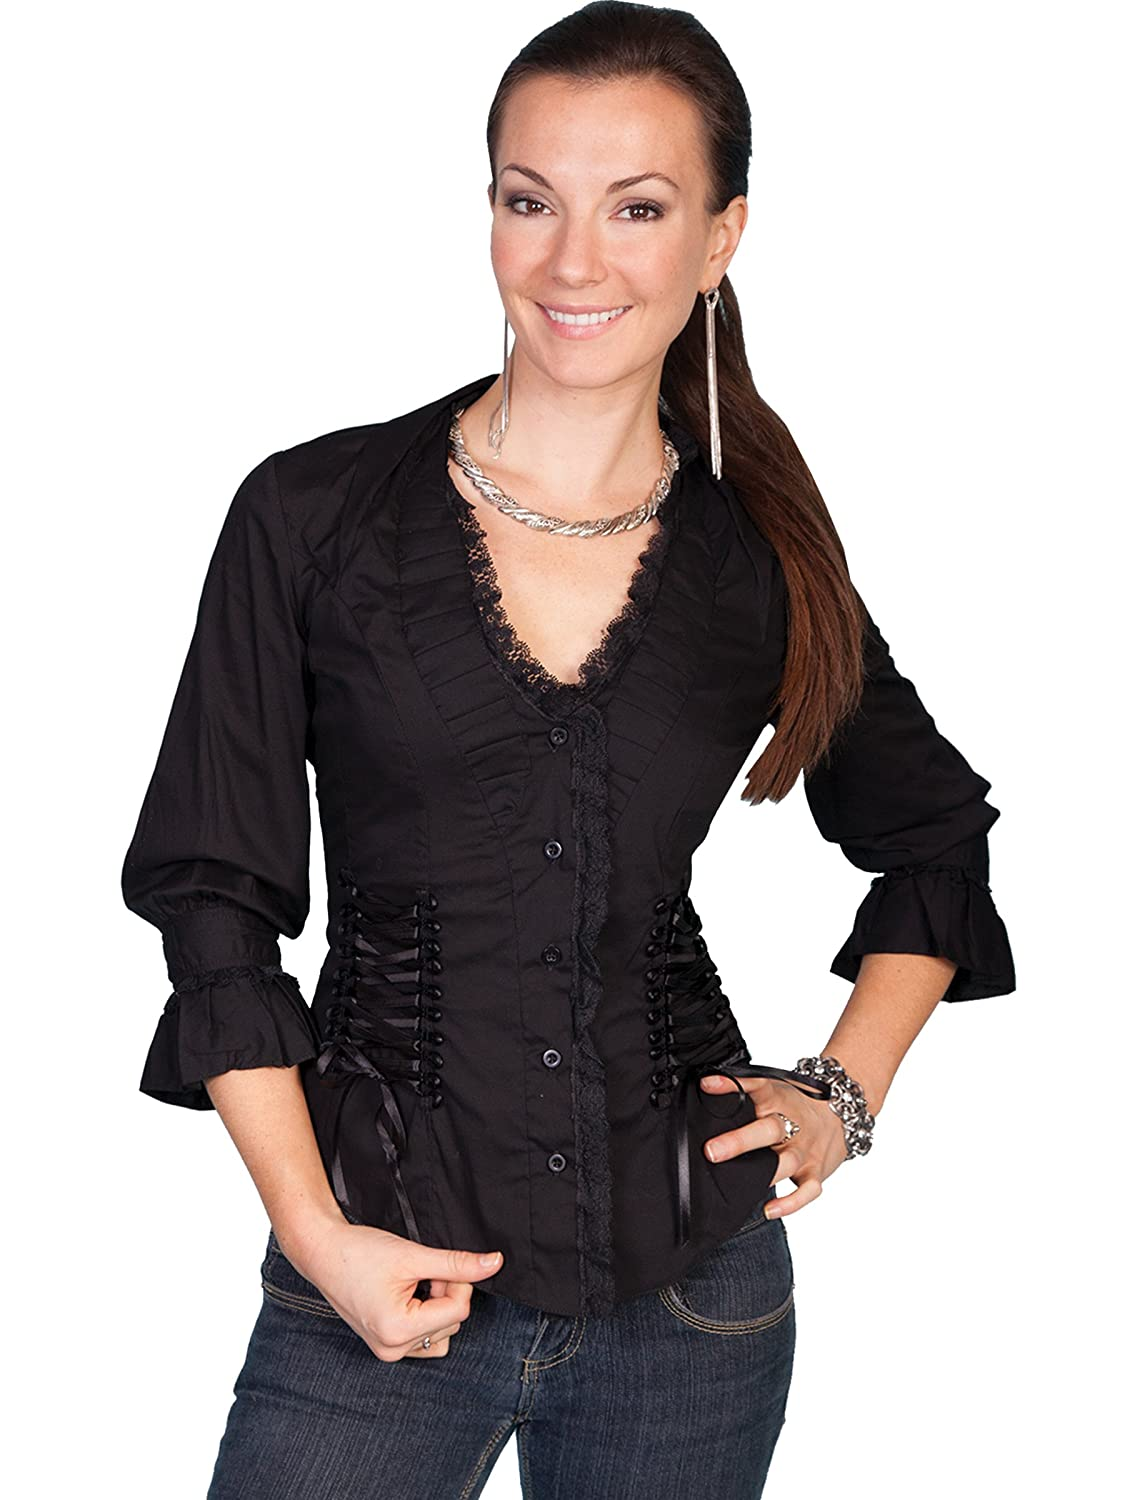 Victorian Clothing, Costumes & 1800s Fashion Scully Womens Lace Up Back 3/4 Length Top $76.75 AT vintagedancer.com